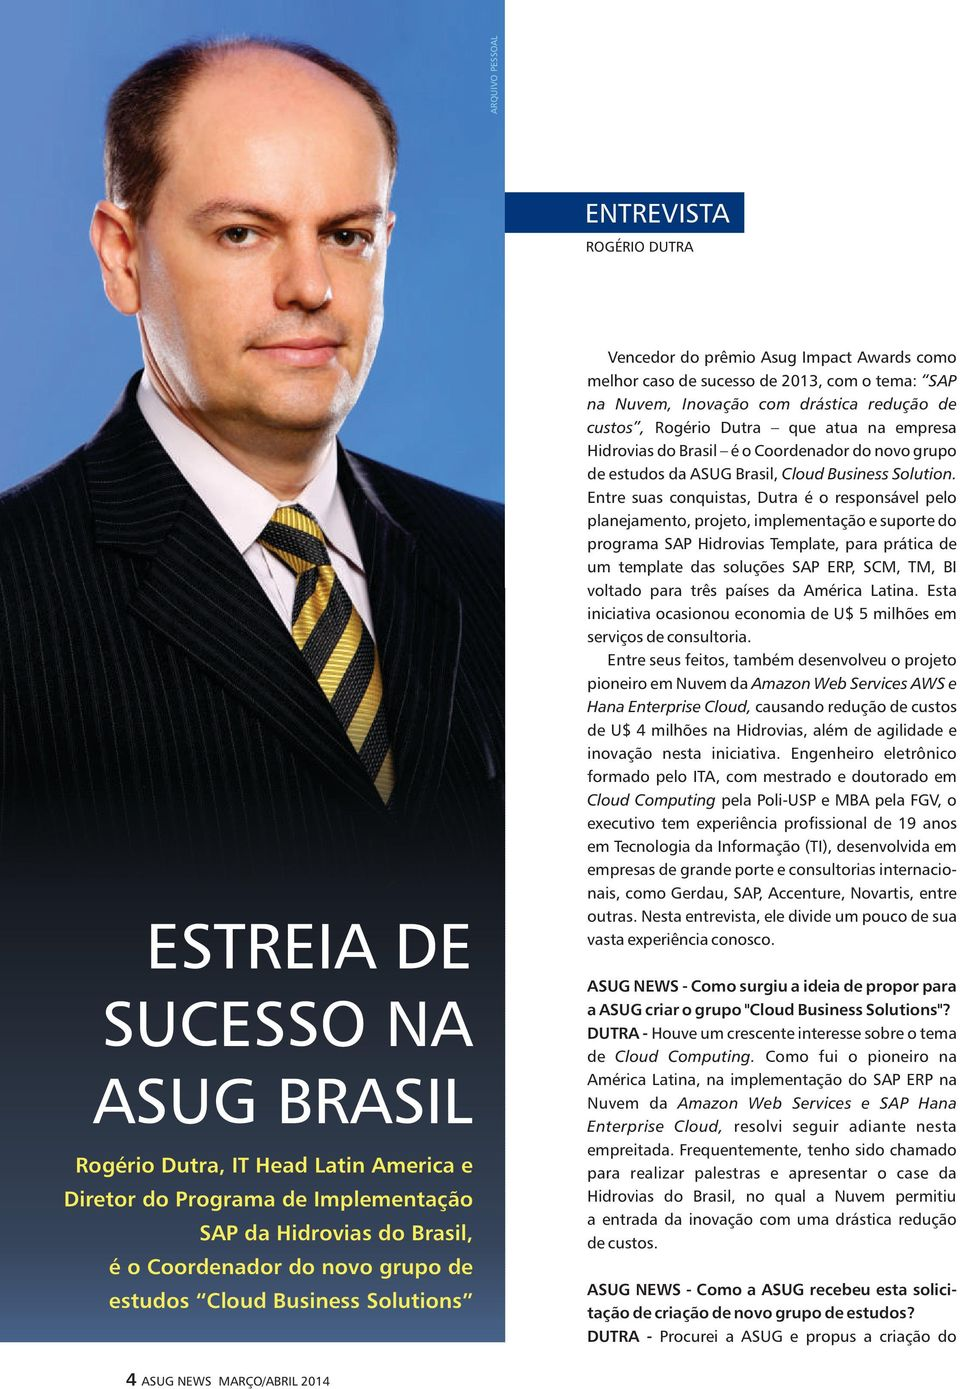 Dutra que atua na empresa Hidrovias do Brasil é o Coordenador do novo grupo de estudos da ASUG Brasil, Cloud Business Solution.